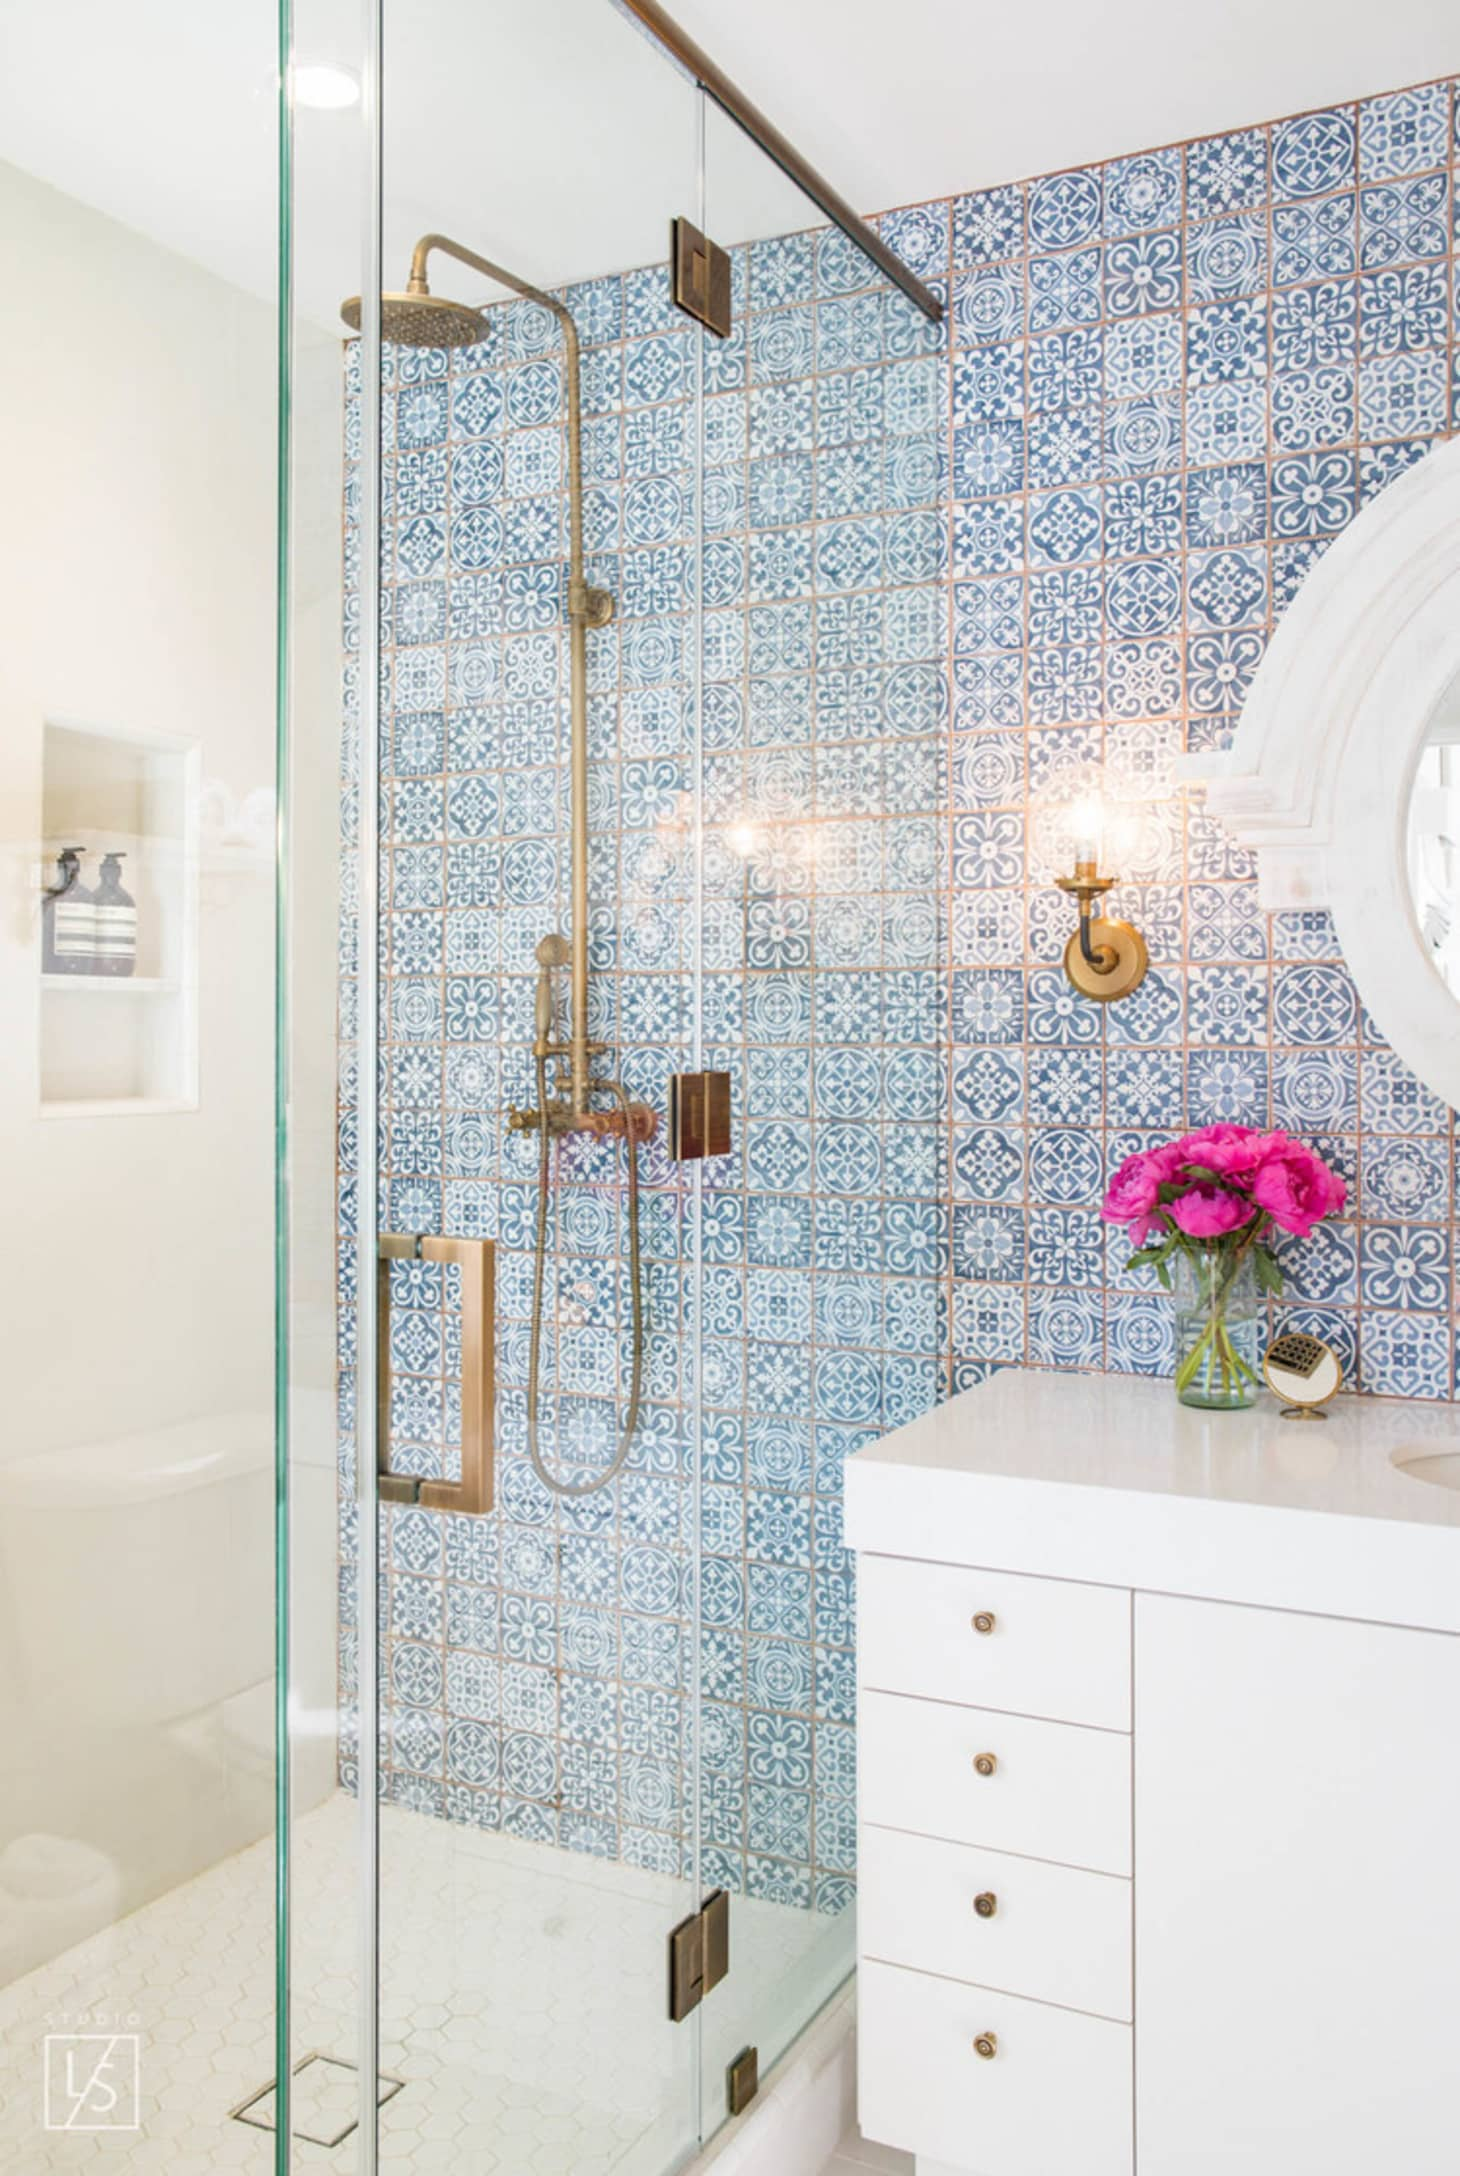 Stylish Remodeling Ideas for Small Bathrooms | Apartment ... on Small Apartment Bathroom  id=44811